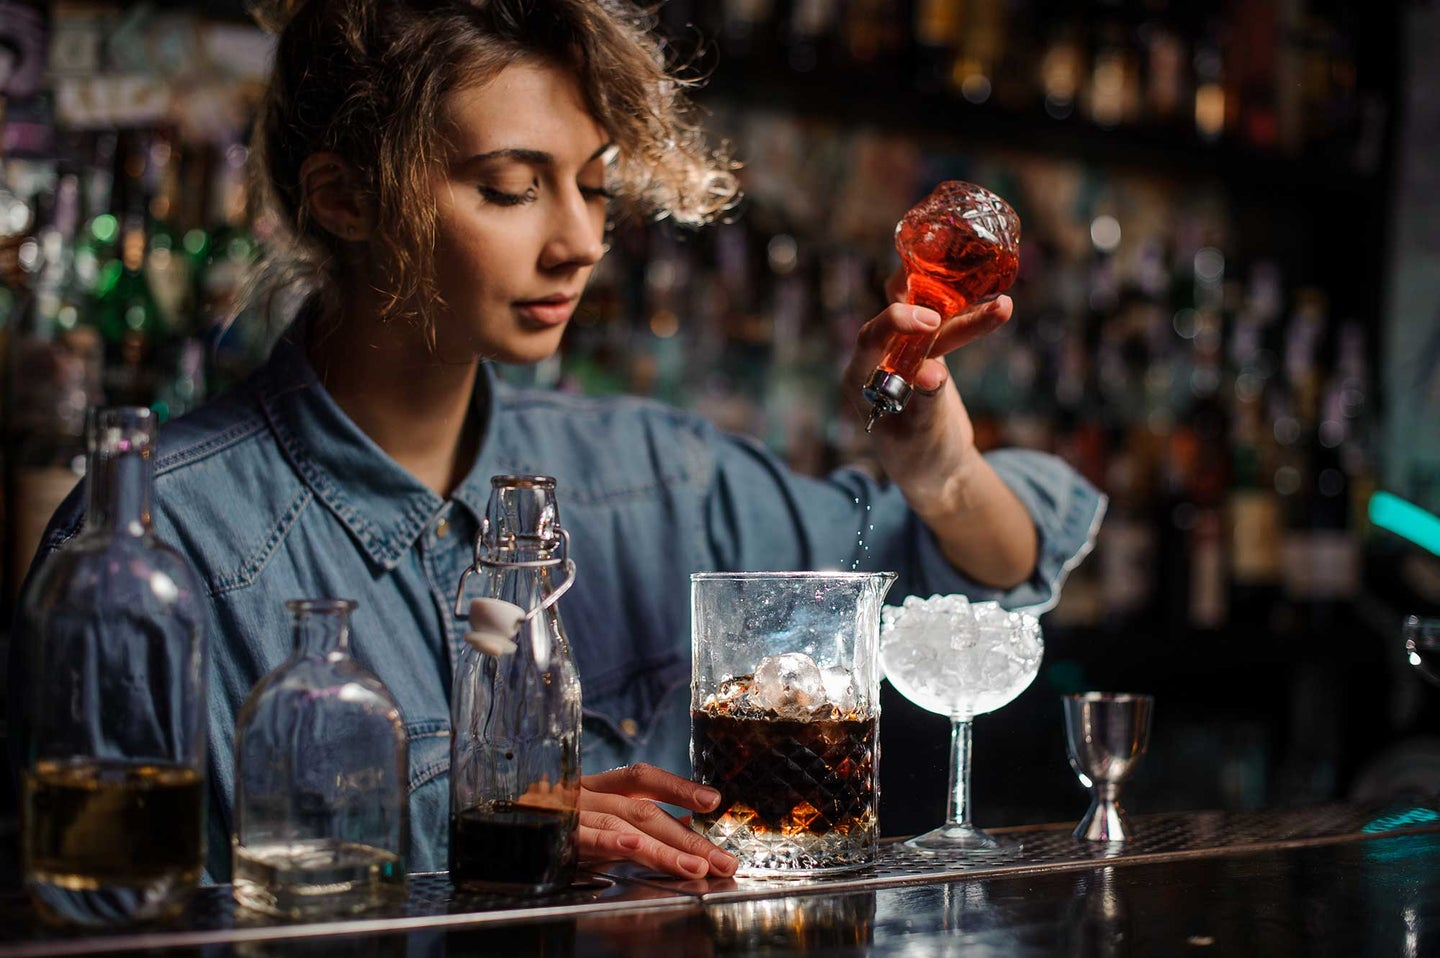 Bartending dashing bitters into a cocktail